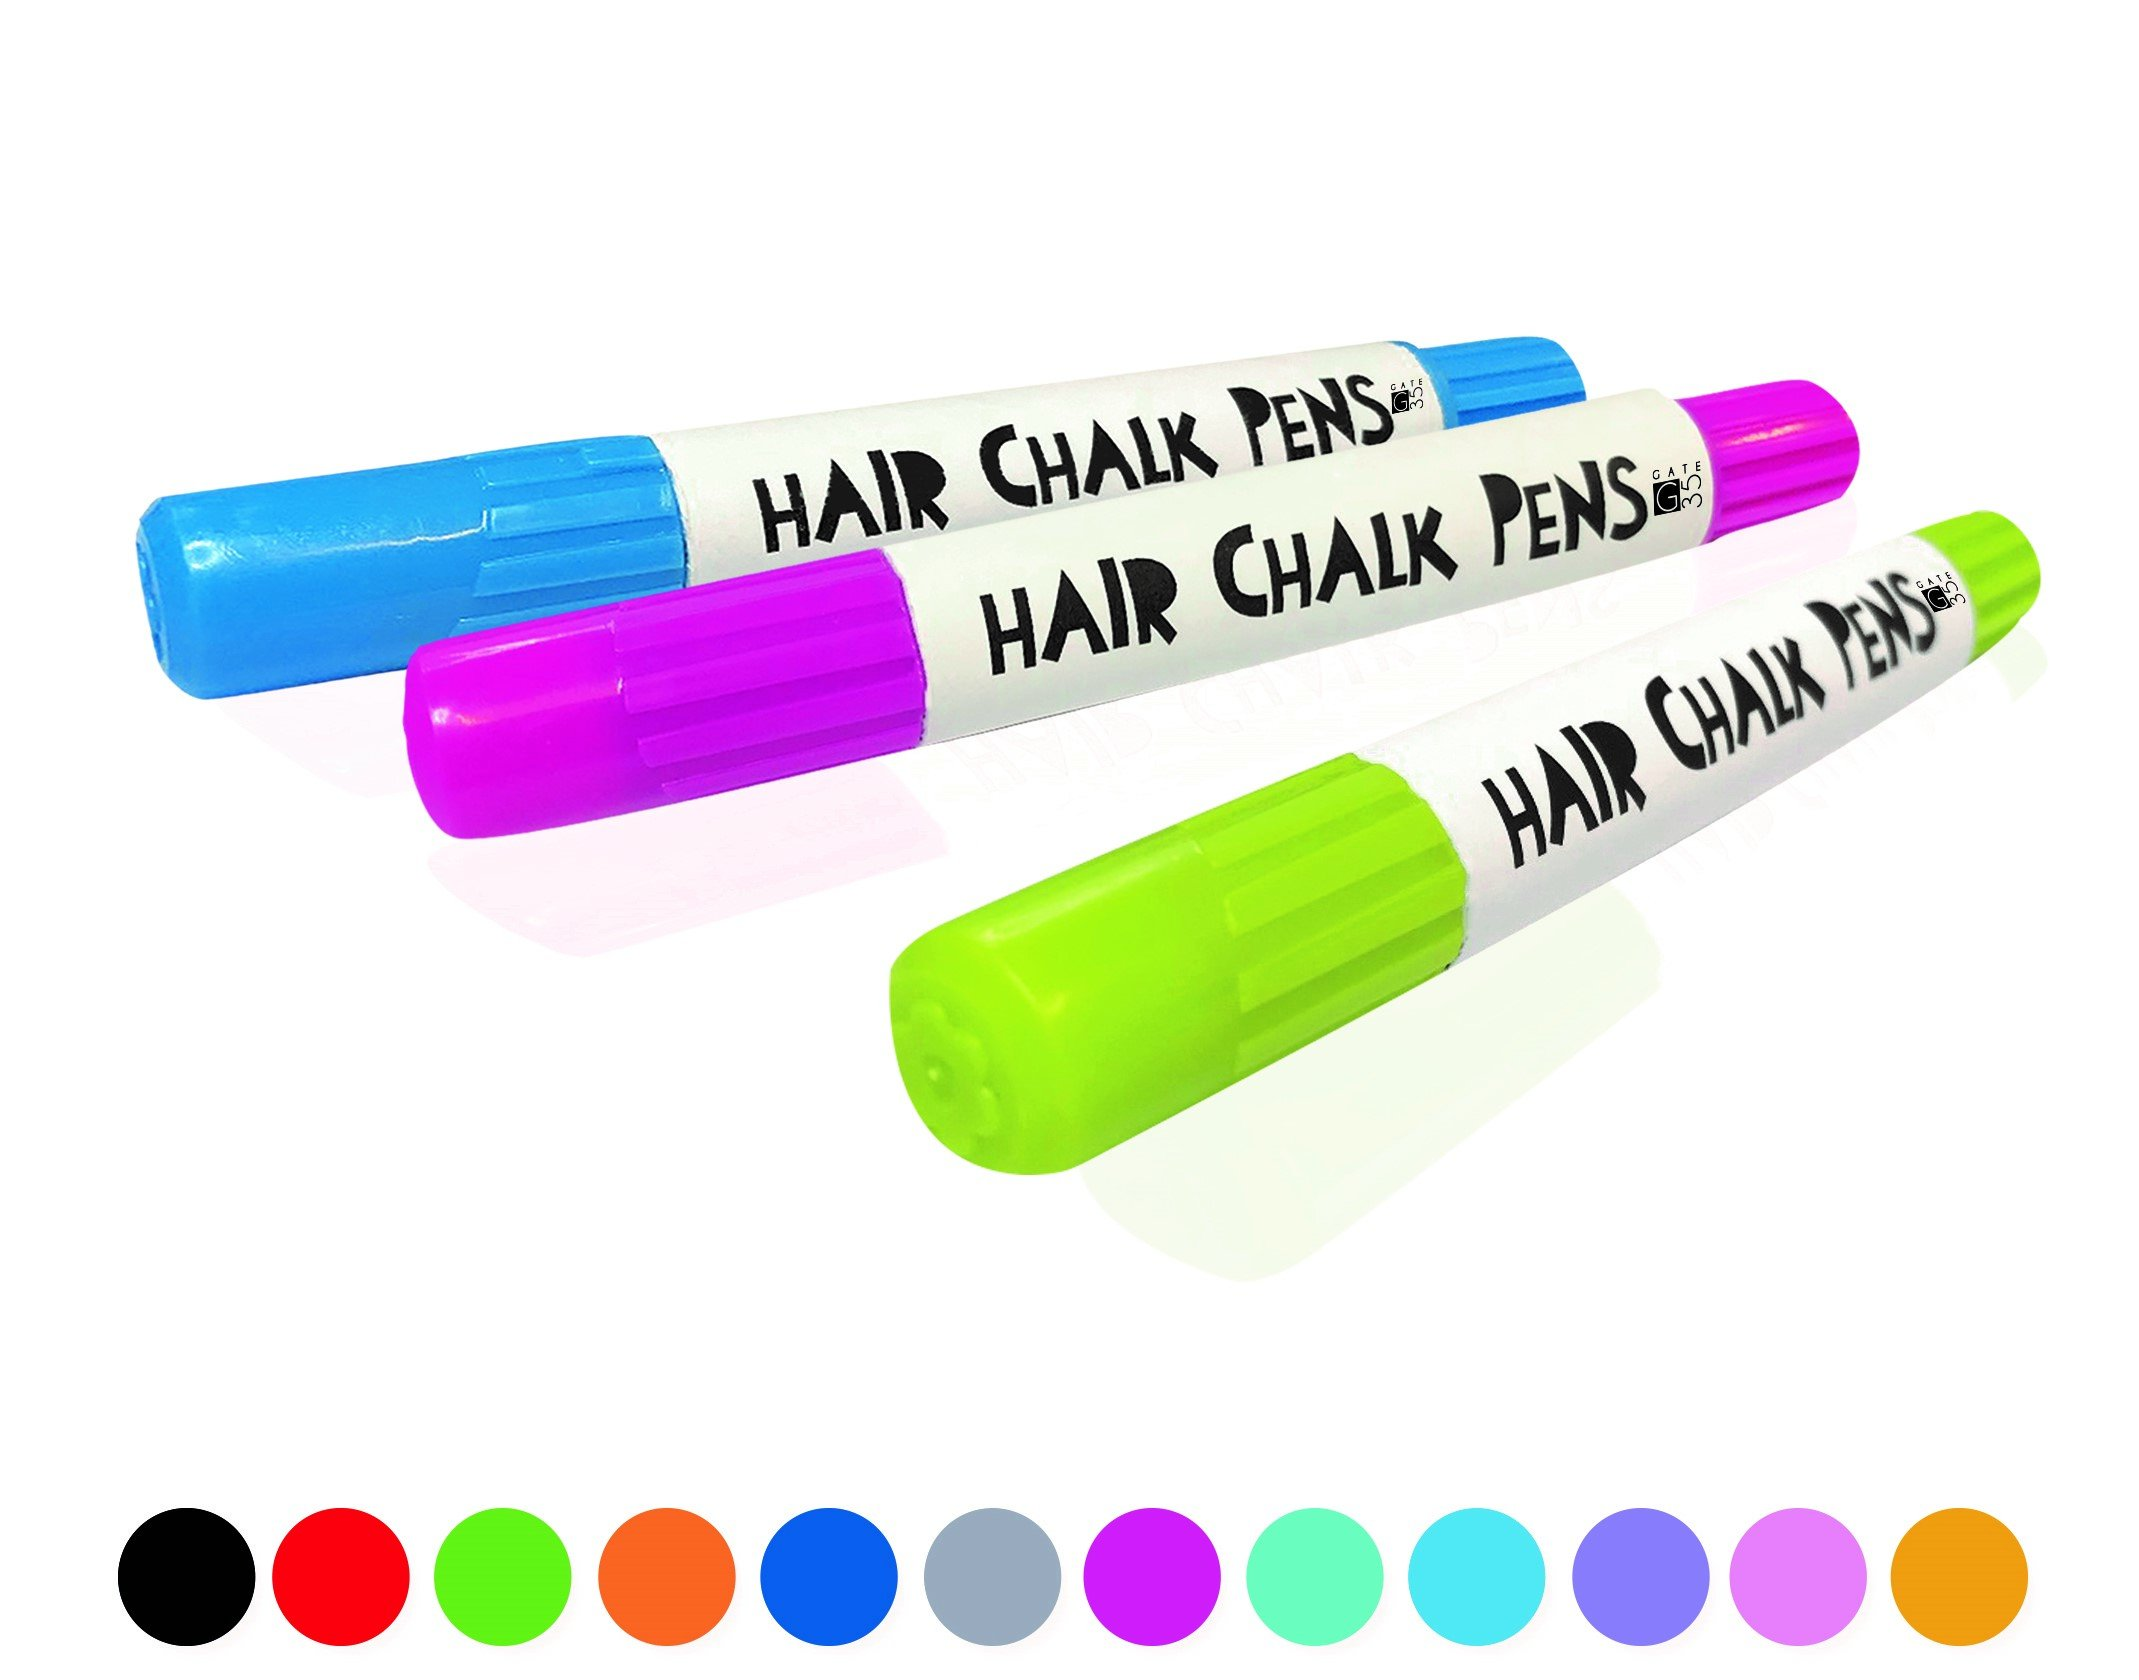 Hair Chalk Pens and Glitters - 12 Chalks and 4 Glitters - Deluxe Set 5